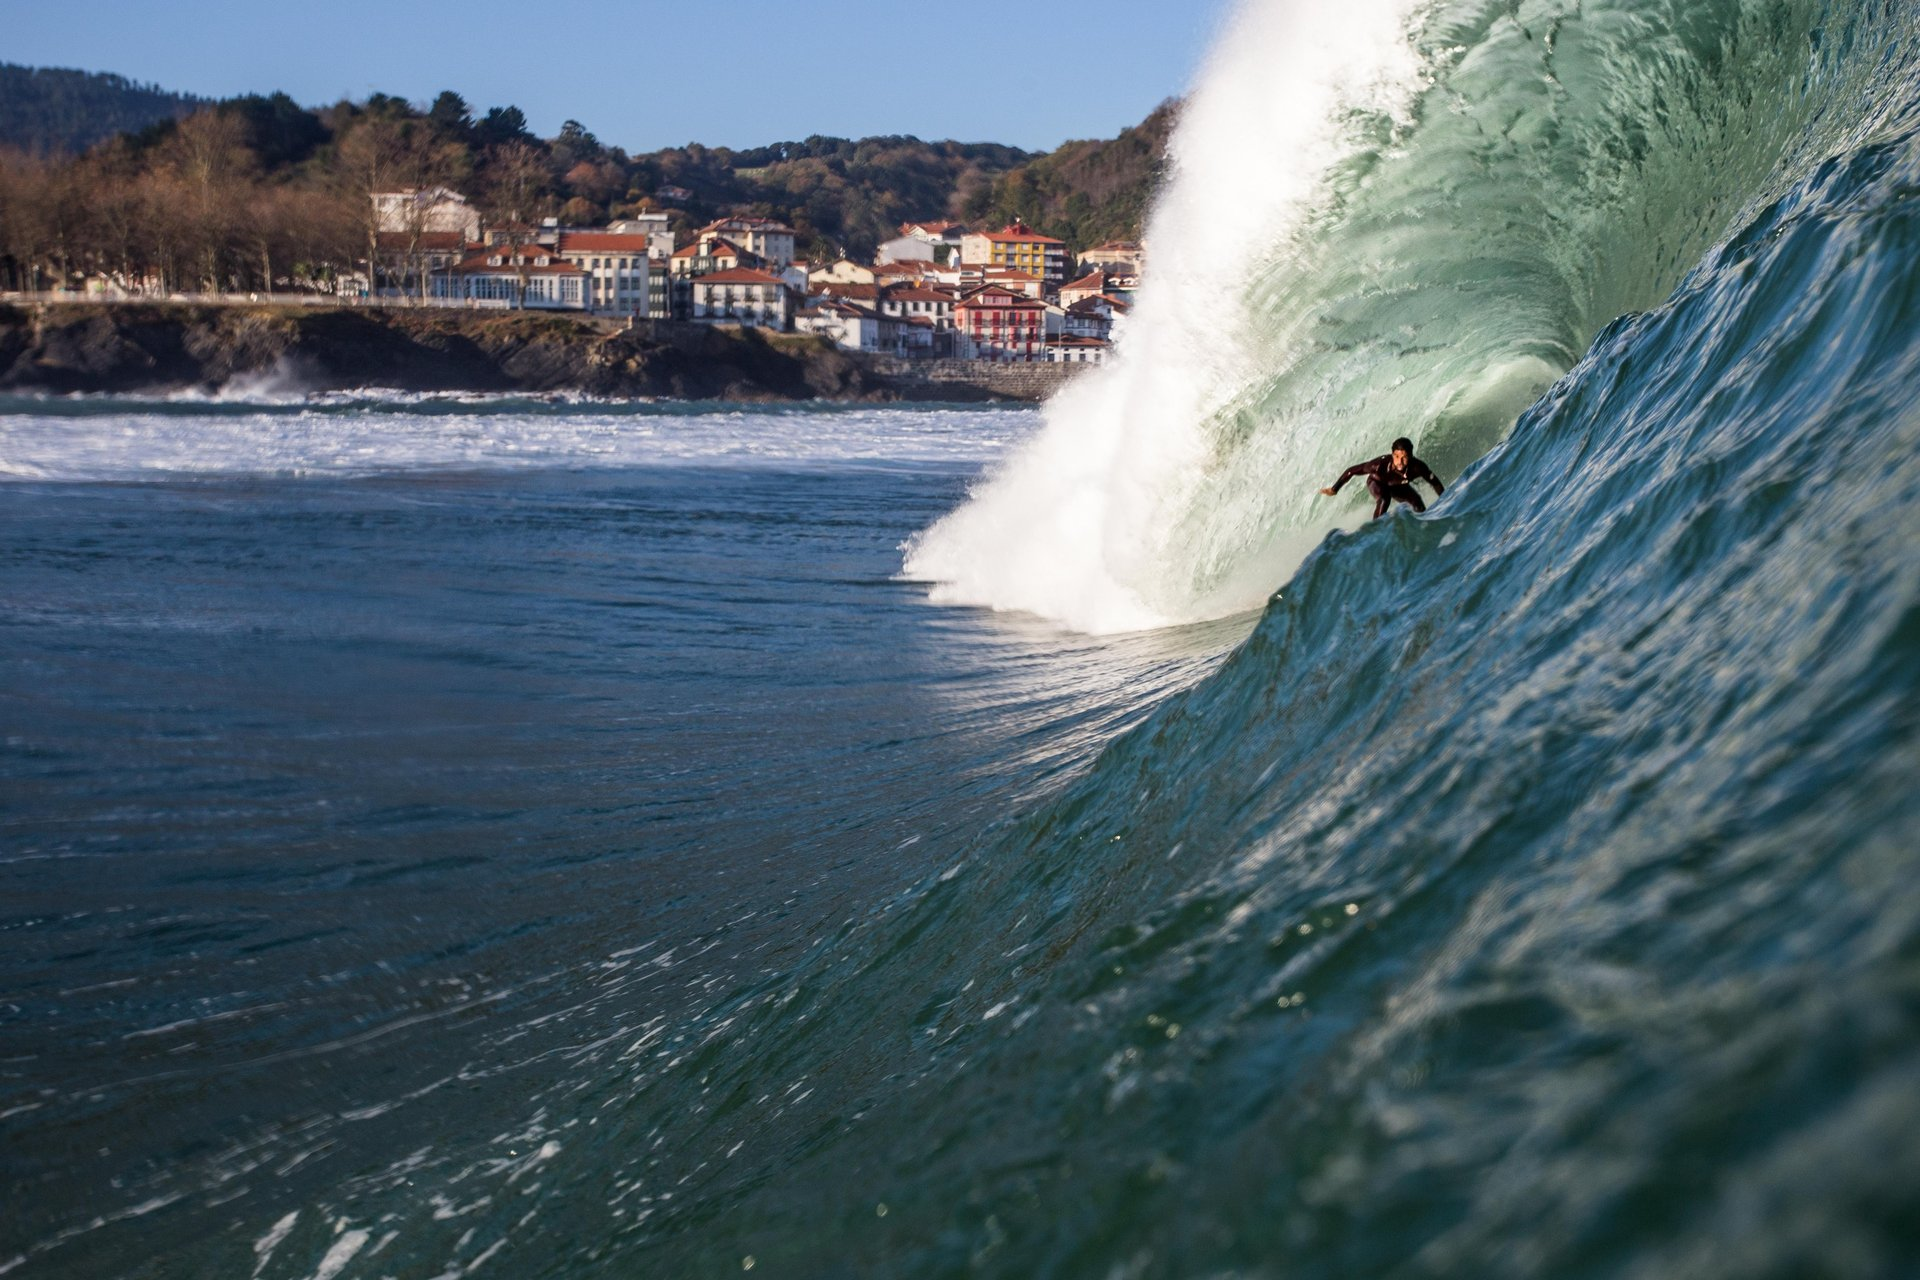 Michal Pelka's photo of Mundaka